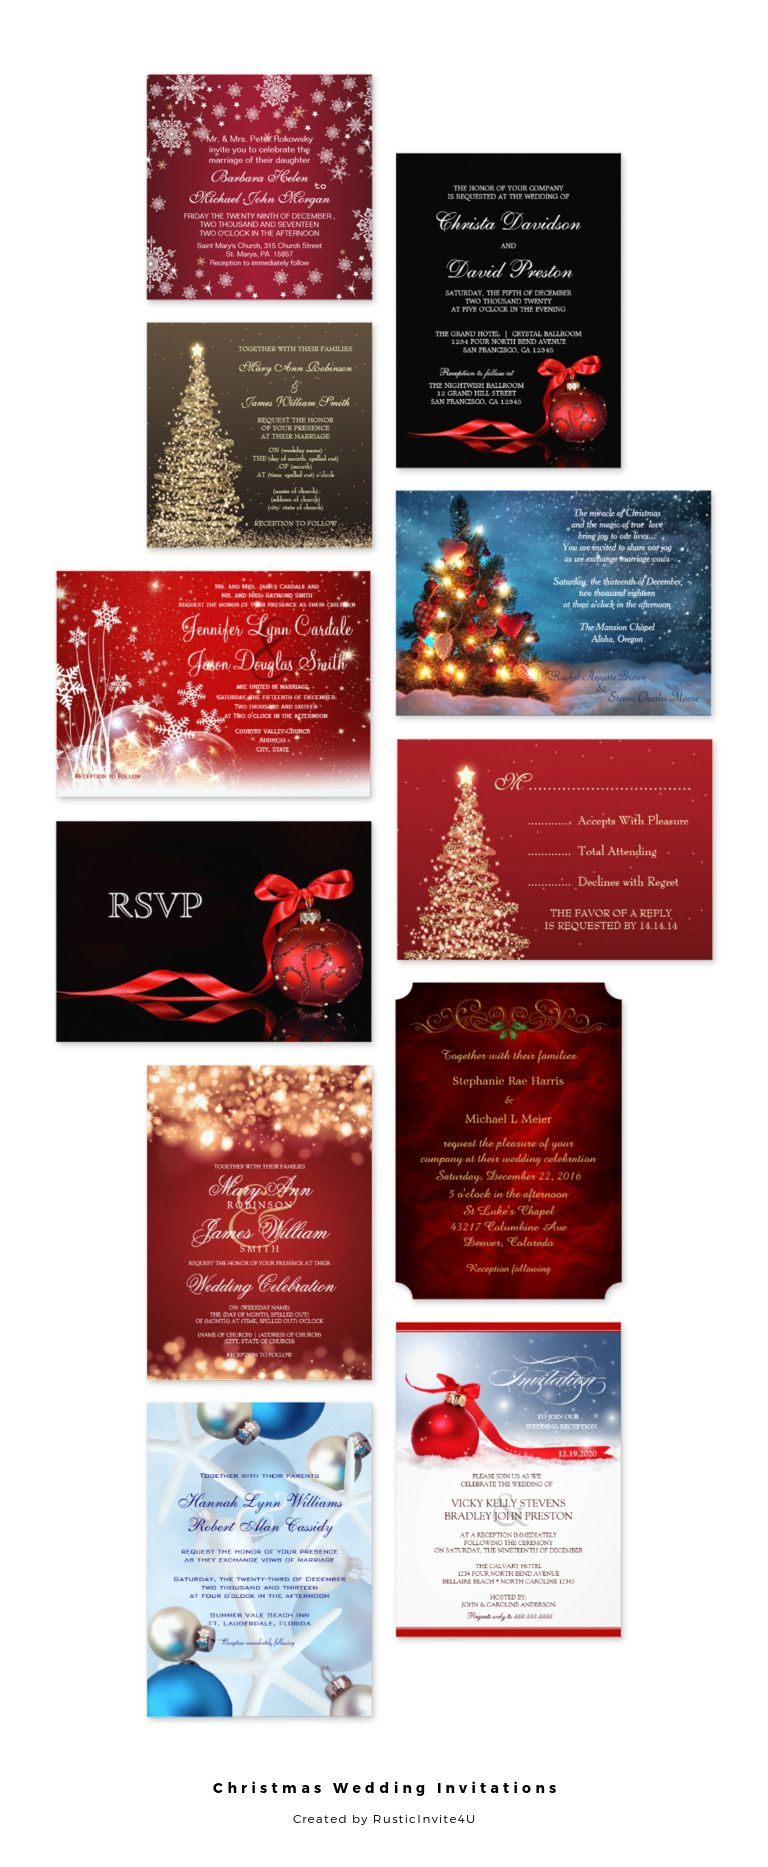 Christmas Wedding Invitations | Wedding Invitations for you ...